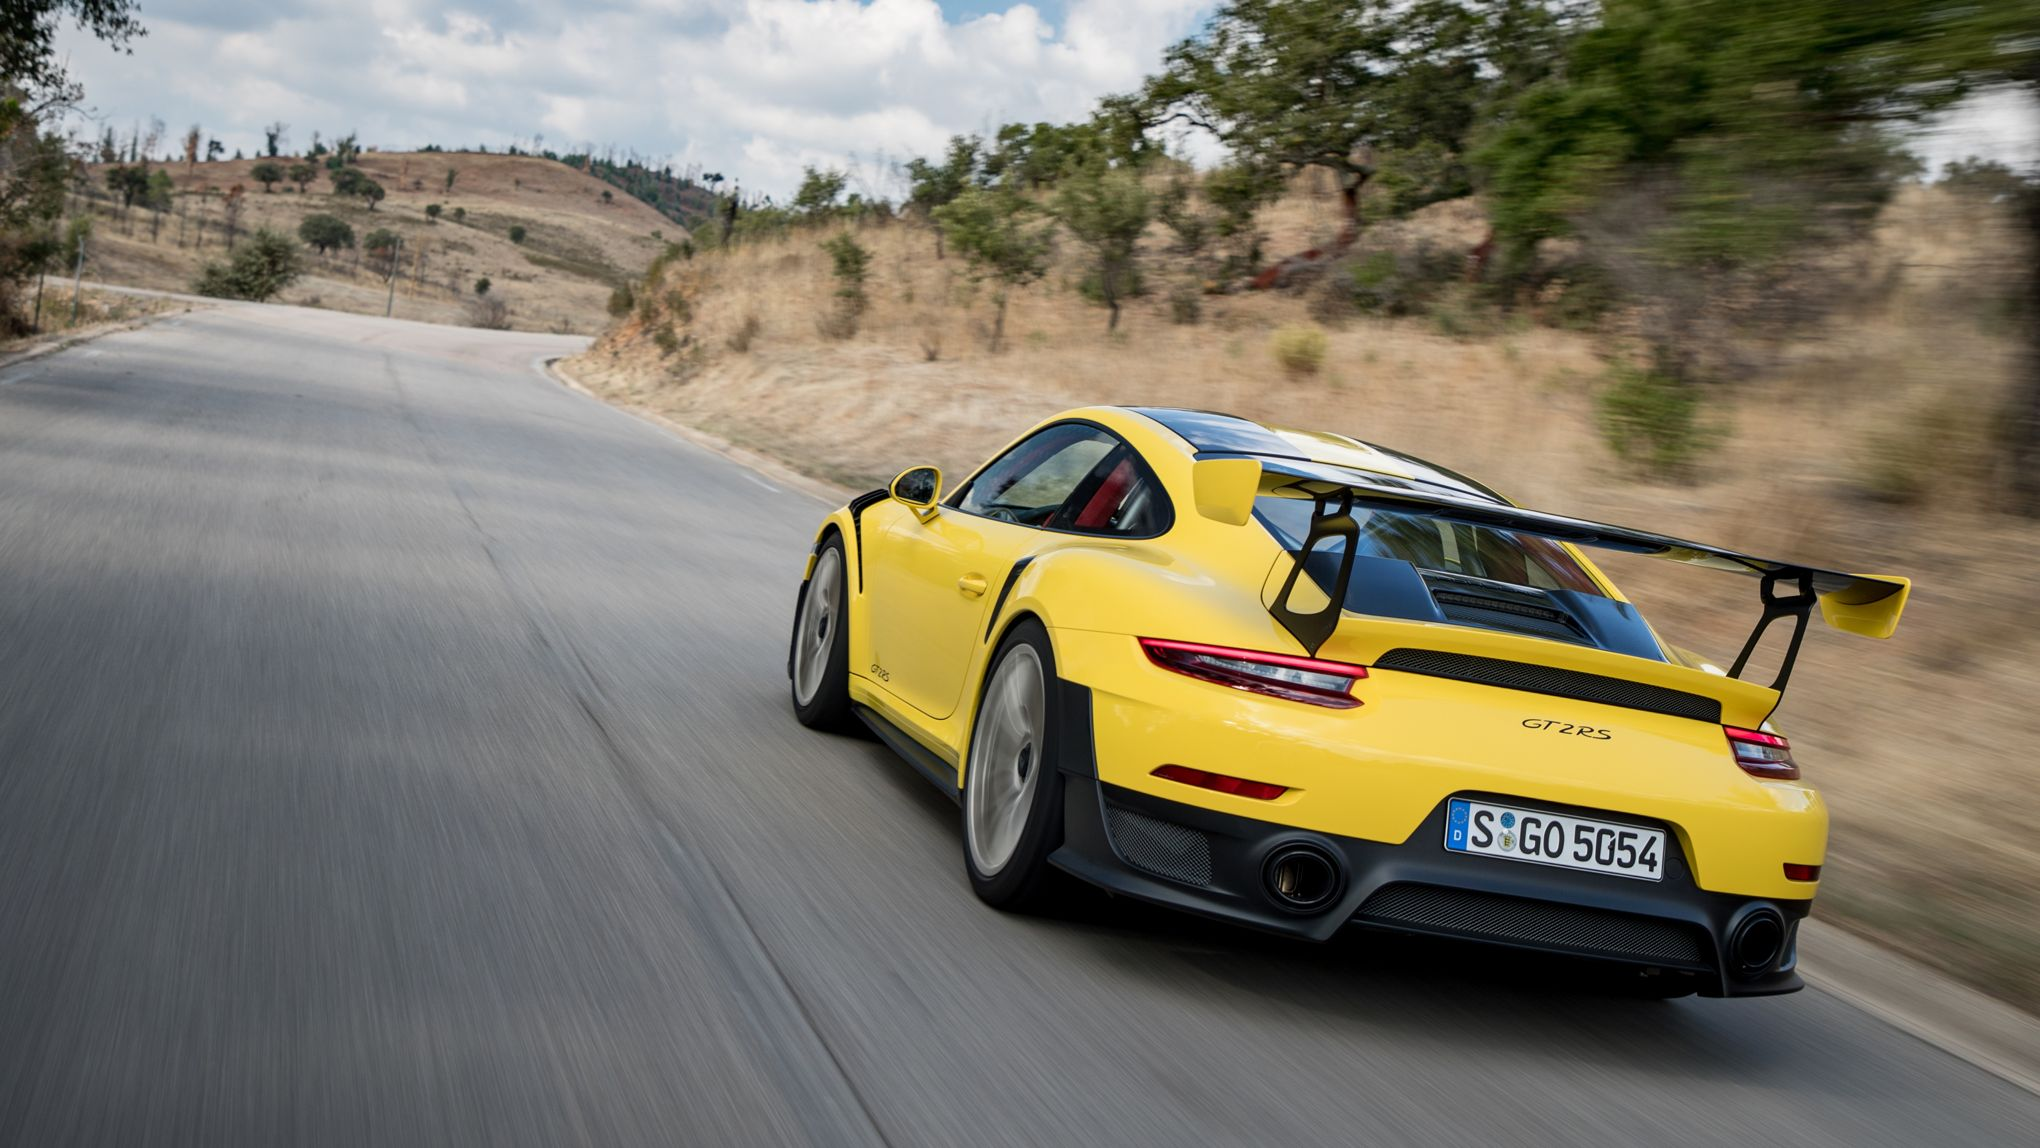 XVM65e1378c-c893-11e7-96ce-4f4039c037ae-805x453 Gorgeous Porsche 911 Gt2 Rs Essai Cars Trend